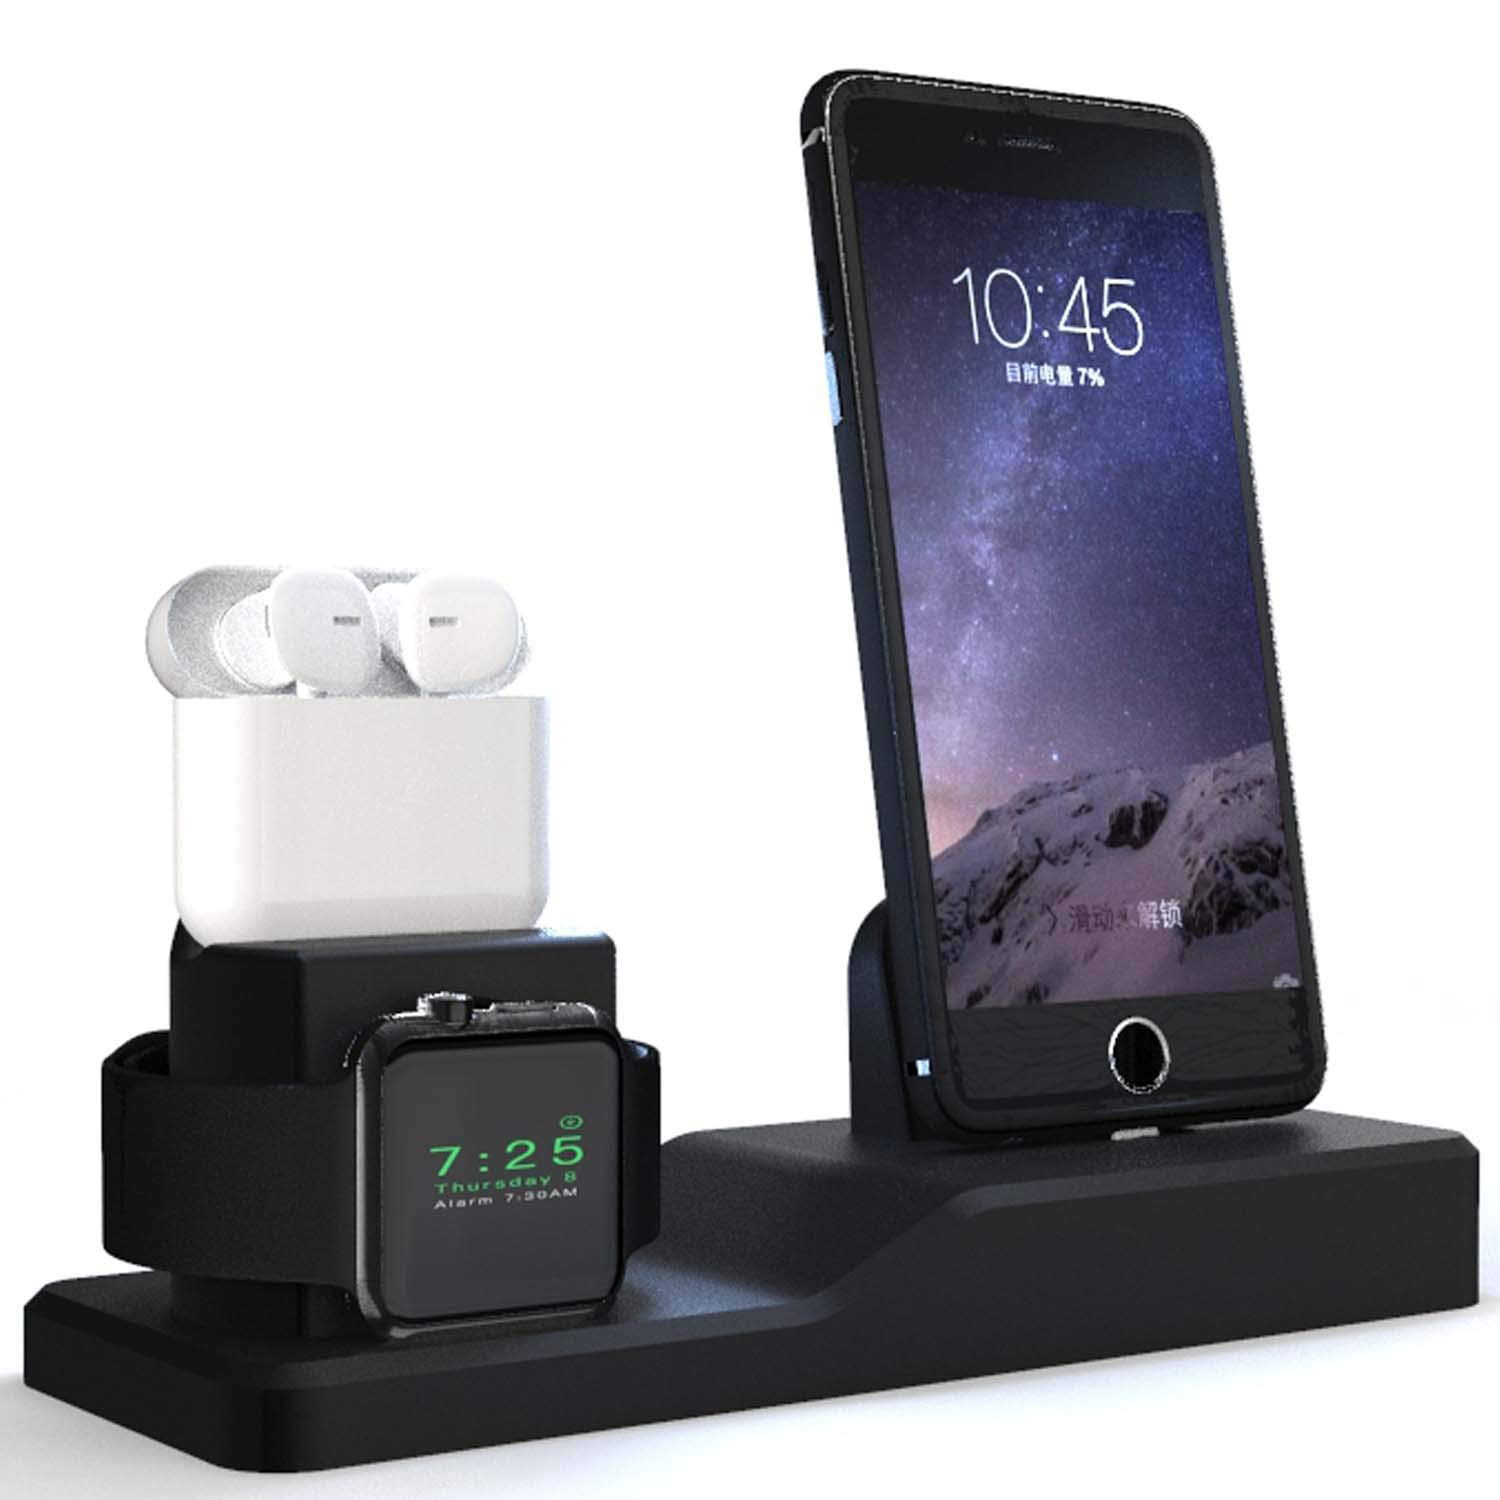 MOTOSPEED Apple Watch Stand, Charging Station Apple Watch Charger for AirPods iPhone, Apple Watch Series 5/4/3/2/1/ AirPods/ iPhone 11/Xs/Xs Max/Xr/X/8/8 Plus/7/7 Plus/6/- Support Nightstand Mode